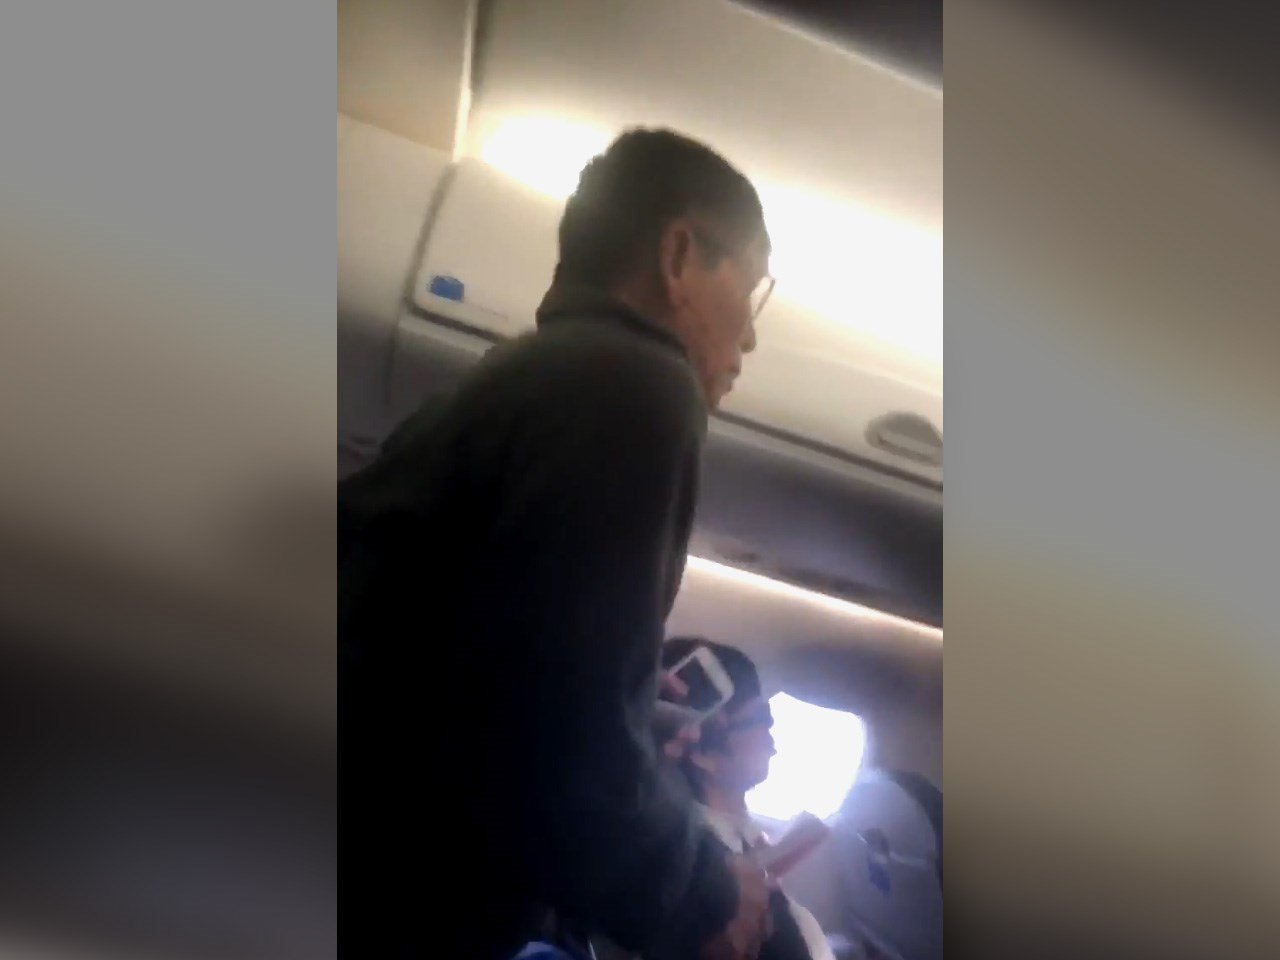 United to Refund All Passengers Who Watched Asian Doctor Get Assaulted